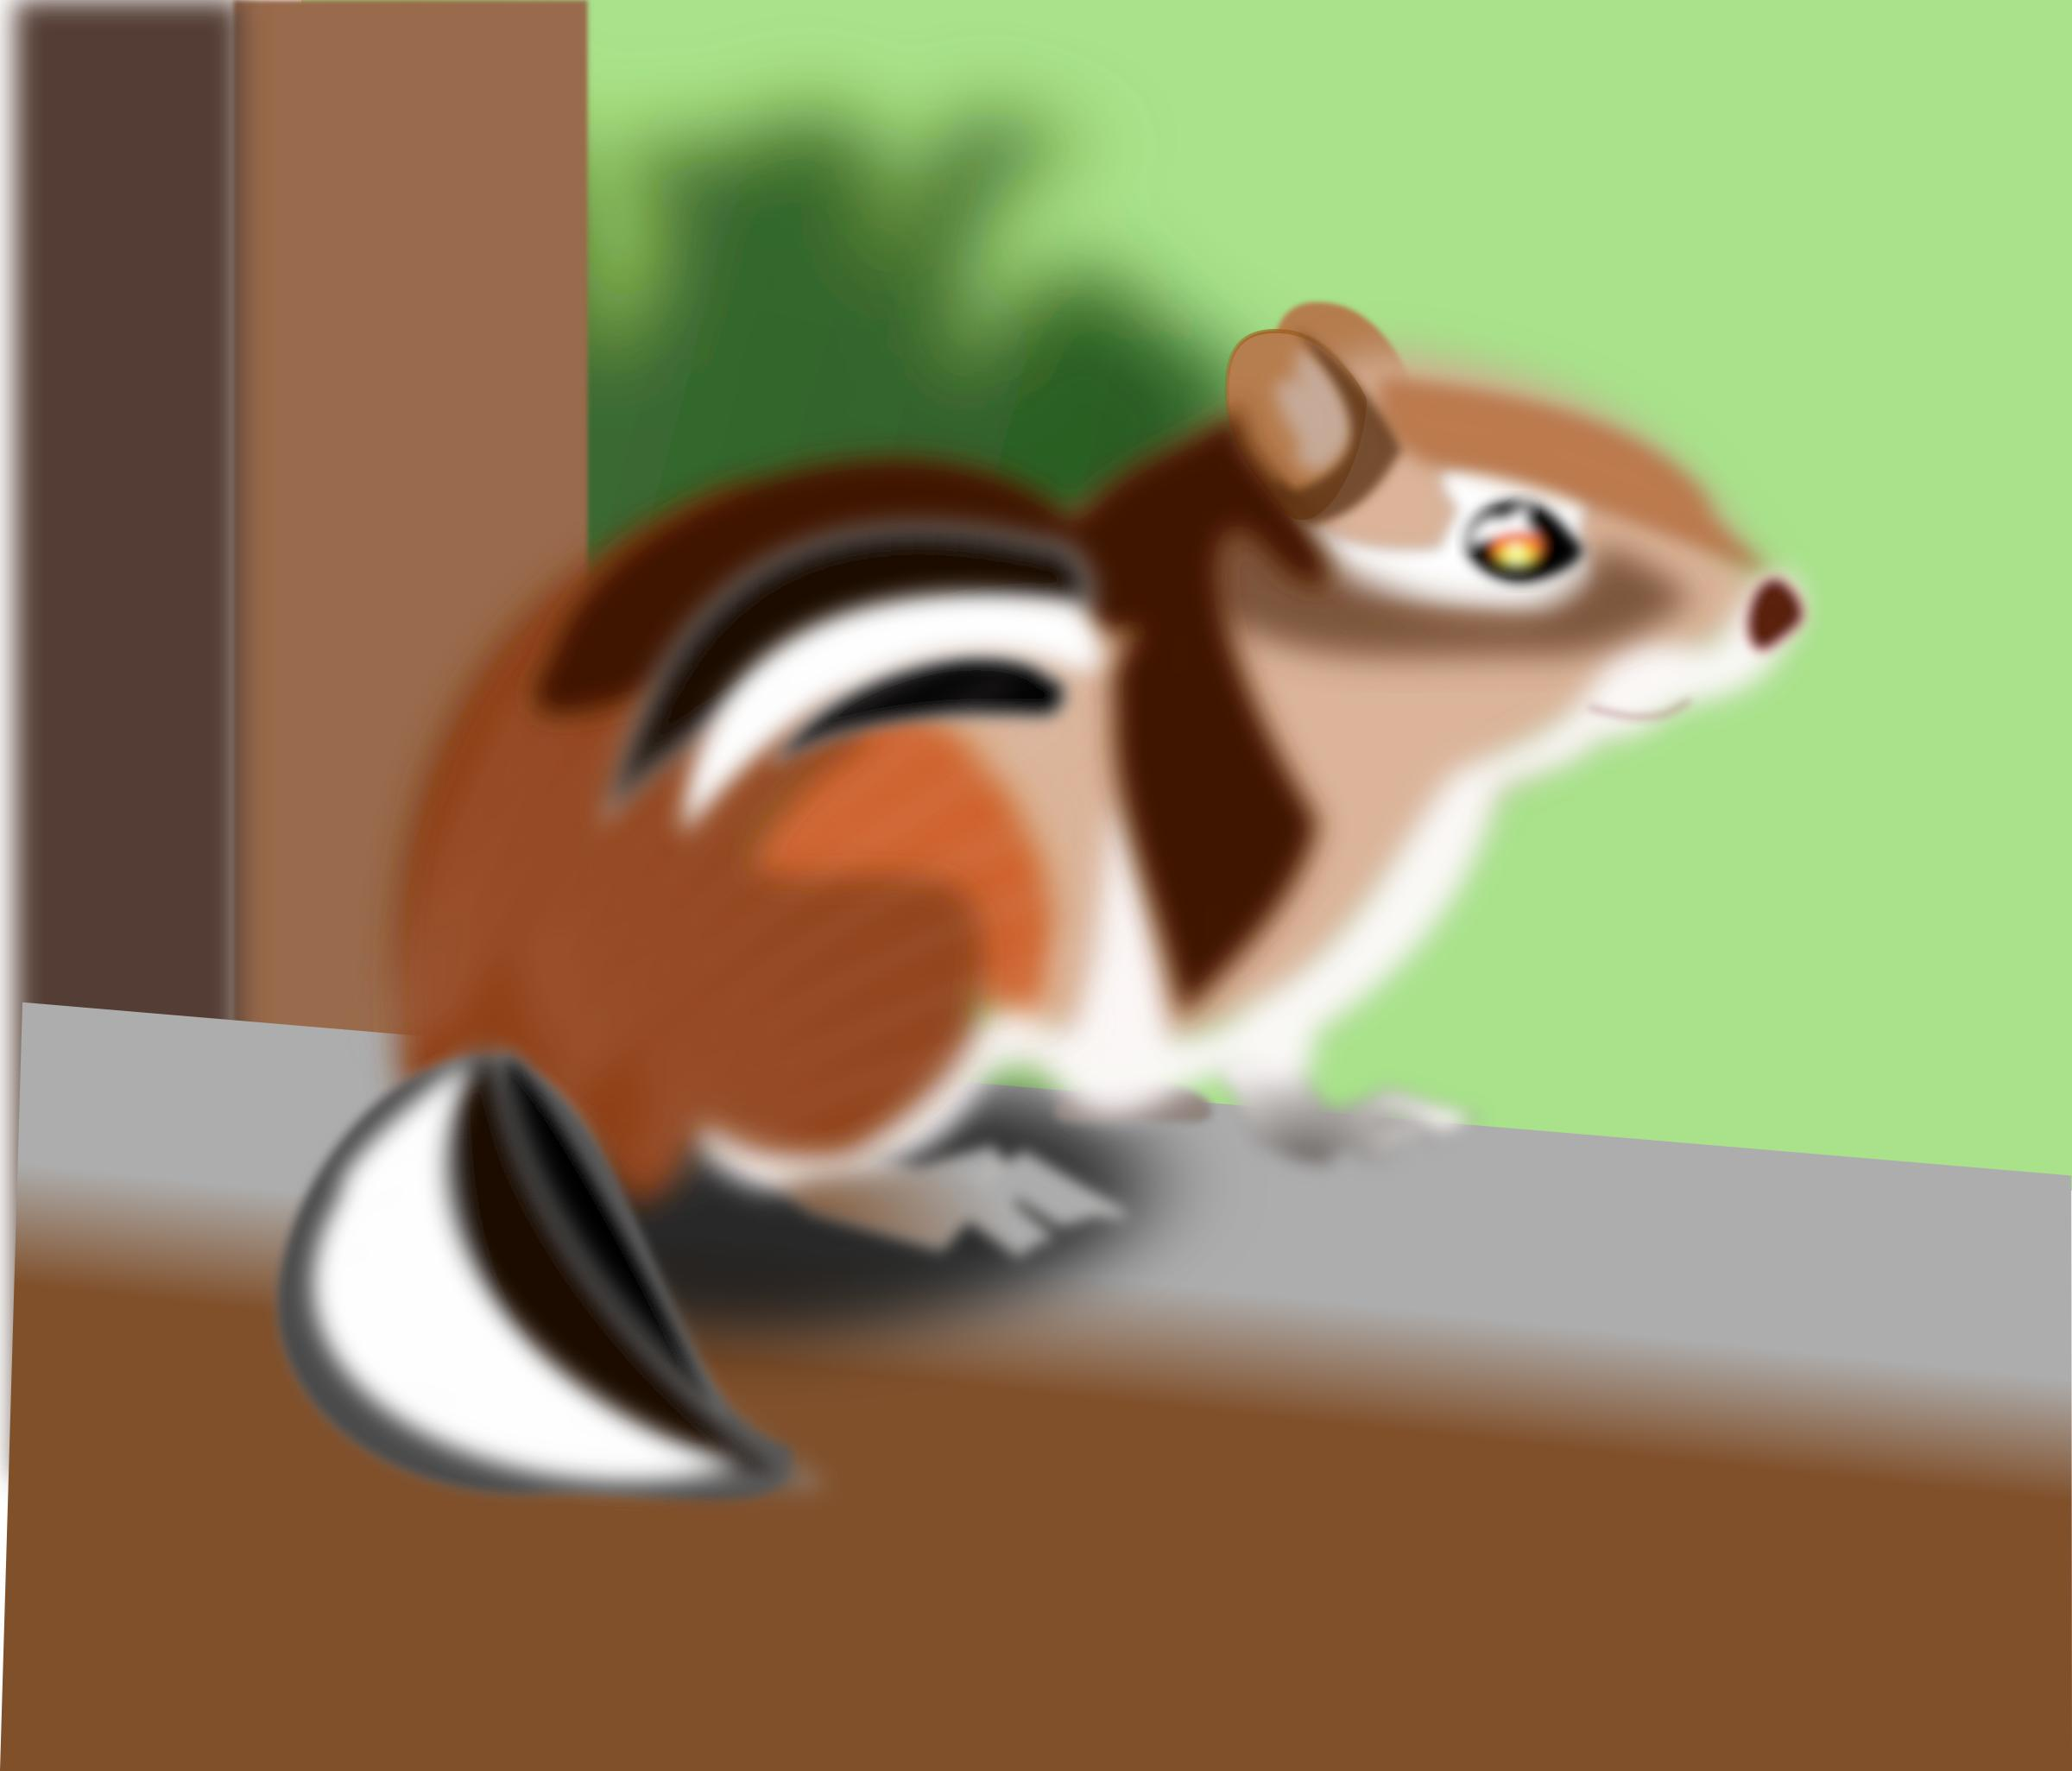 Sad clipart chipmunk. Very fat icons png